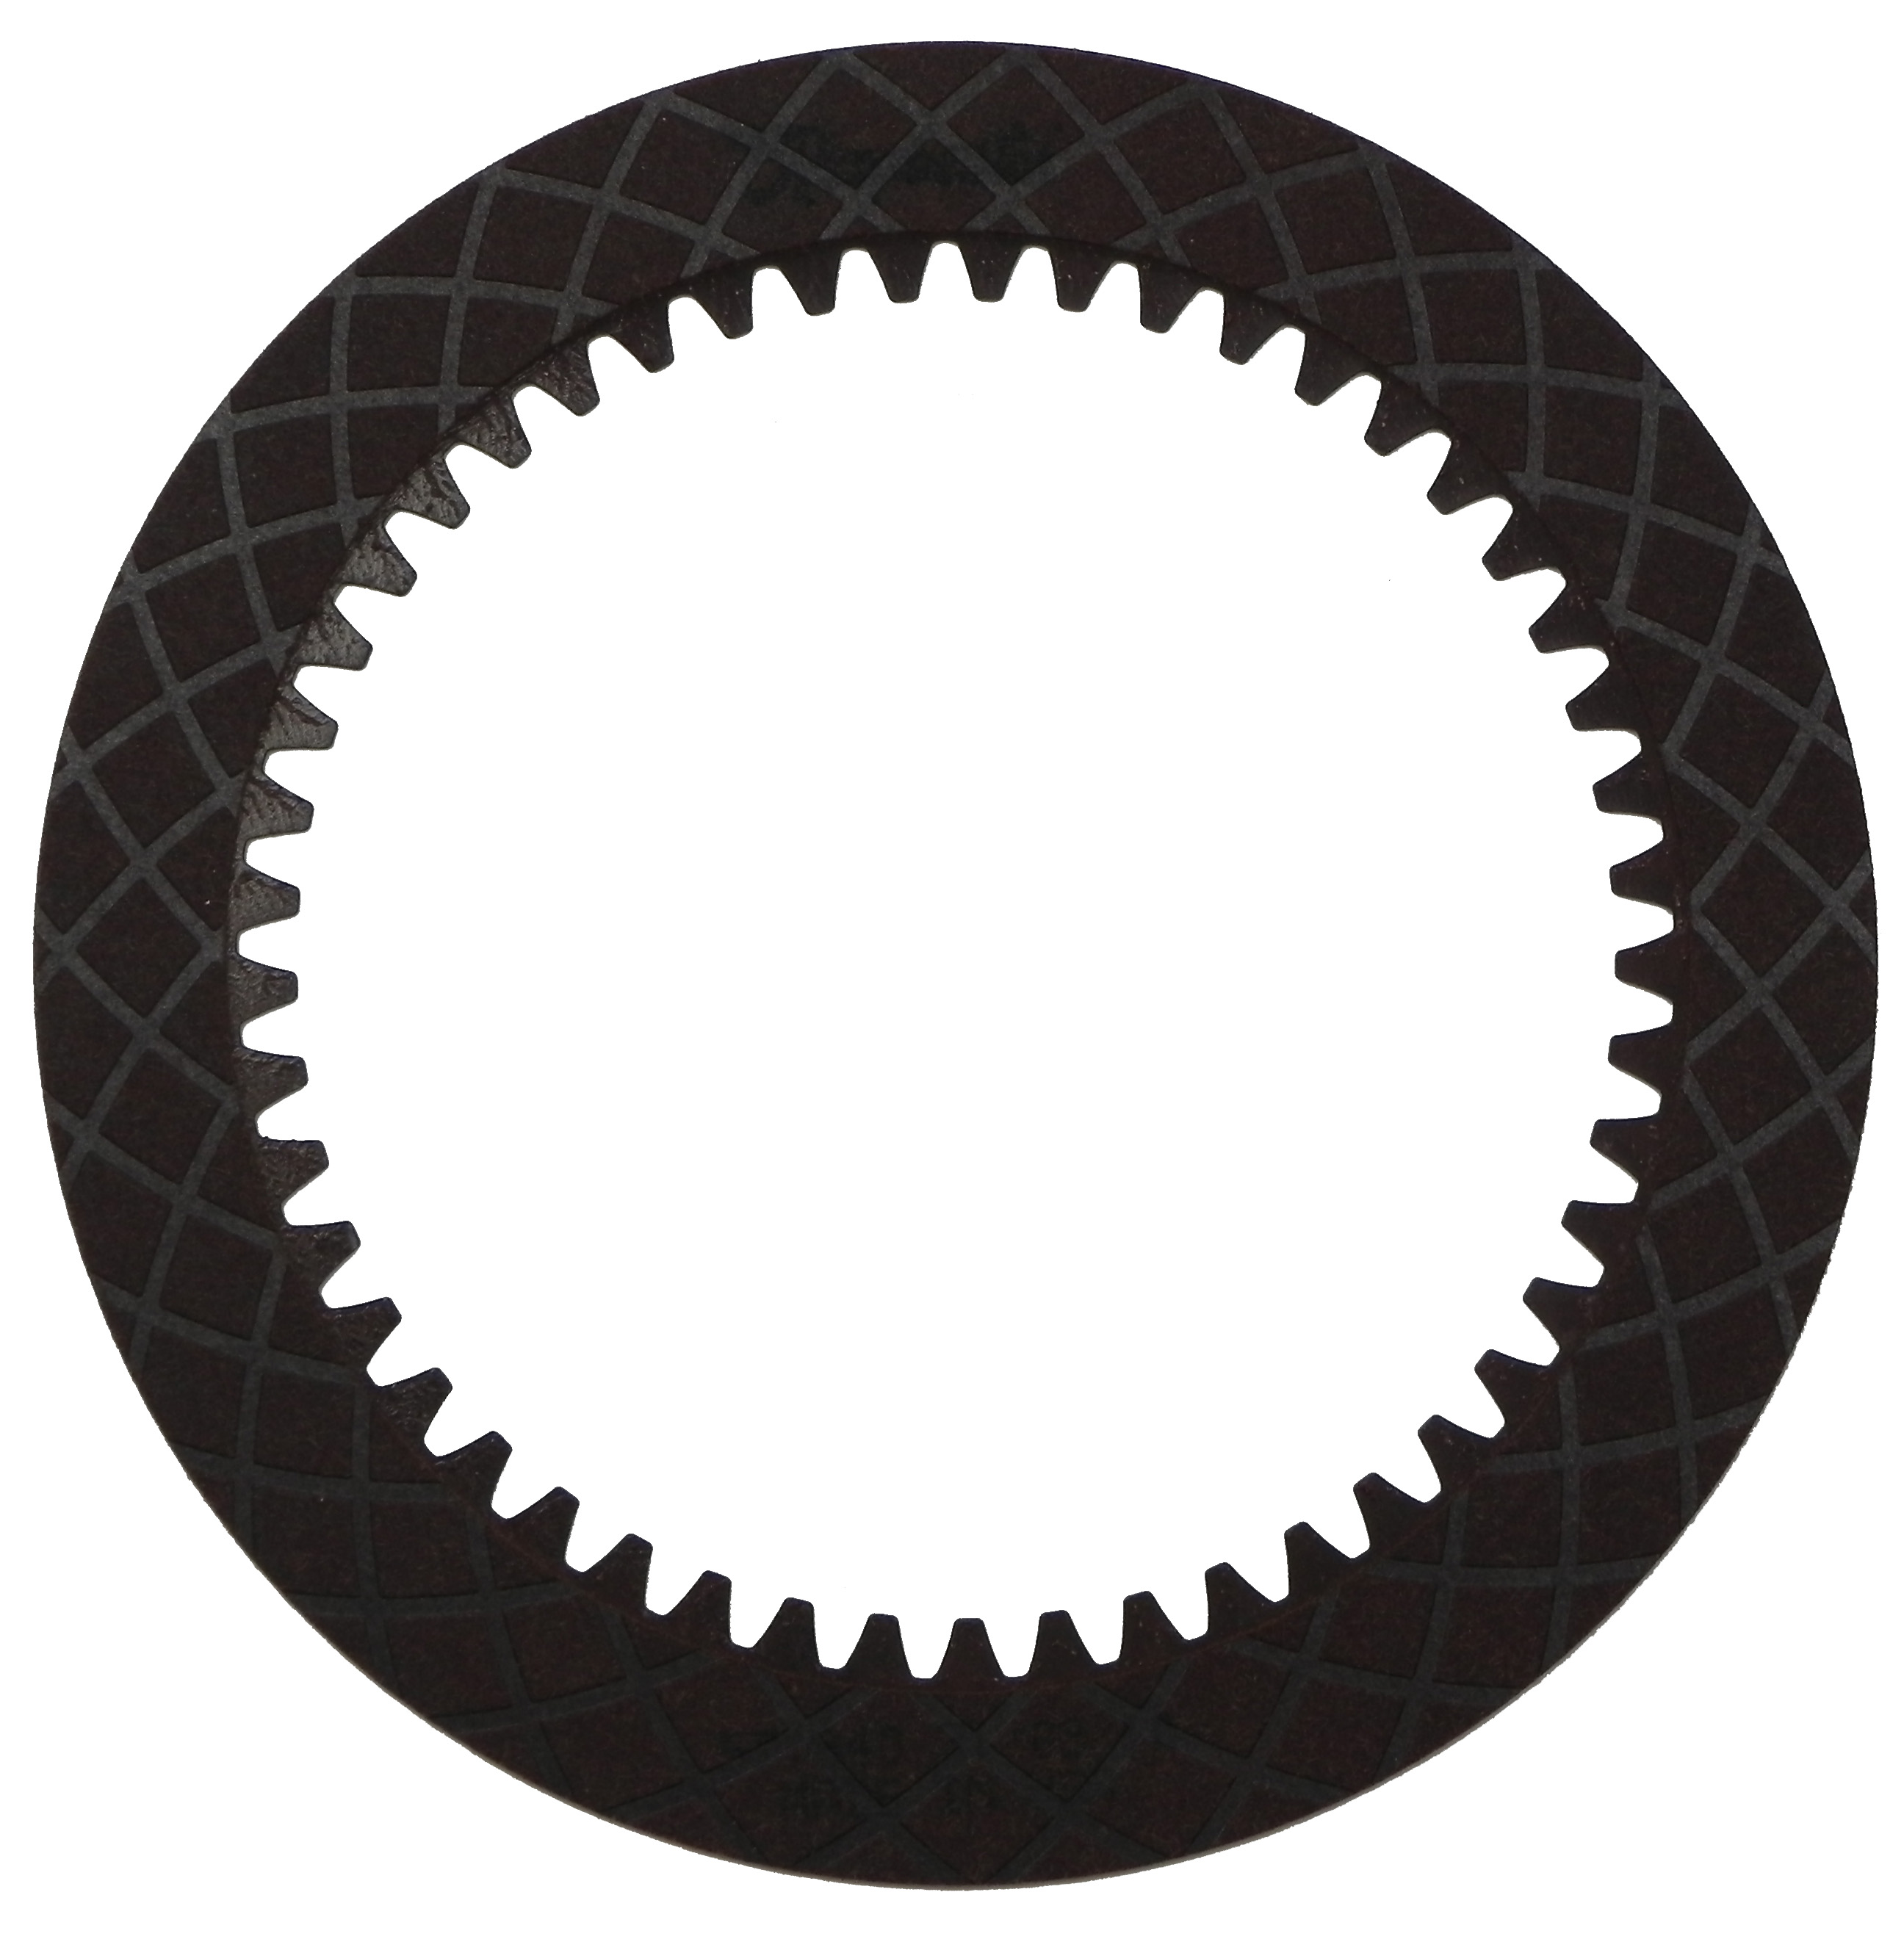 5 SPEED BDKA , MDKA GPX Friction Clutch Plate